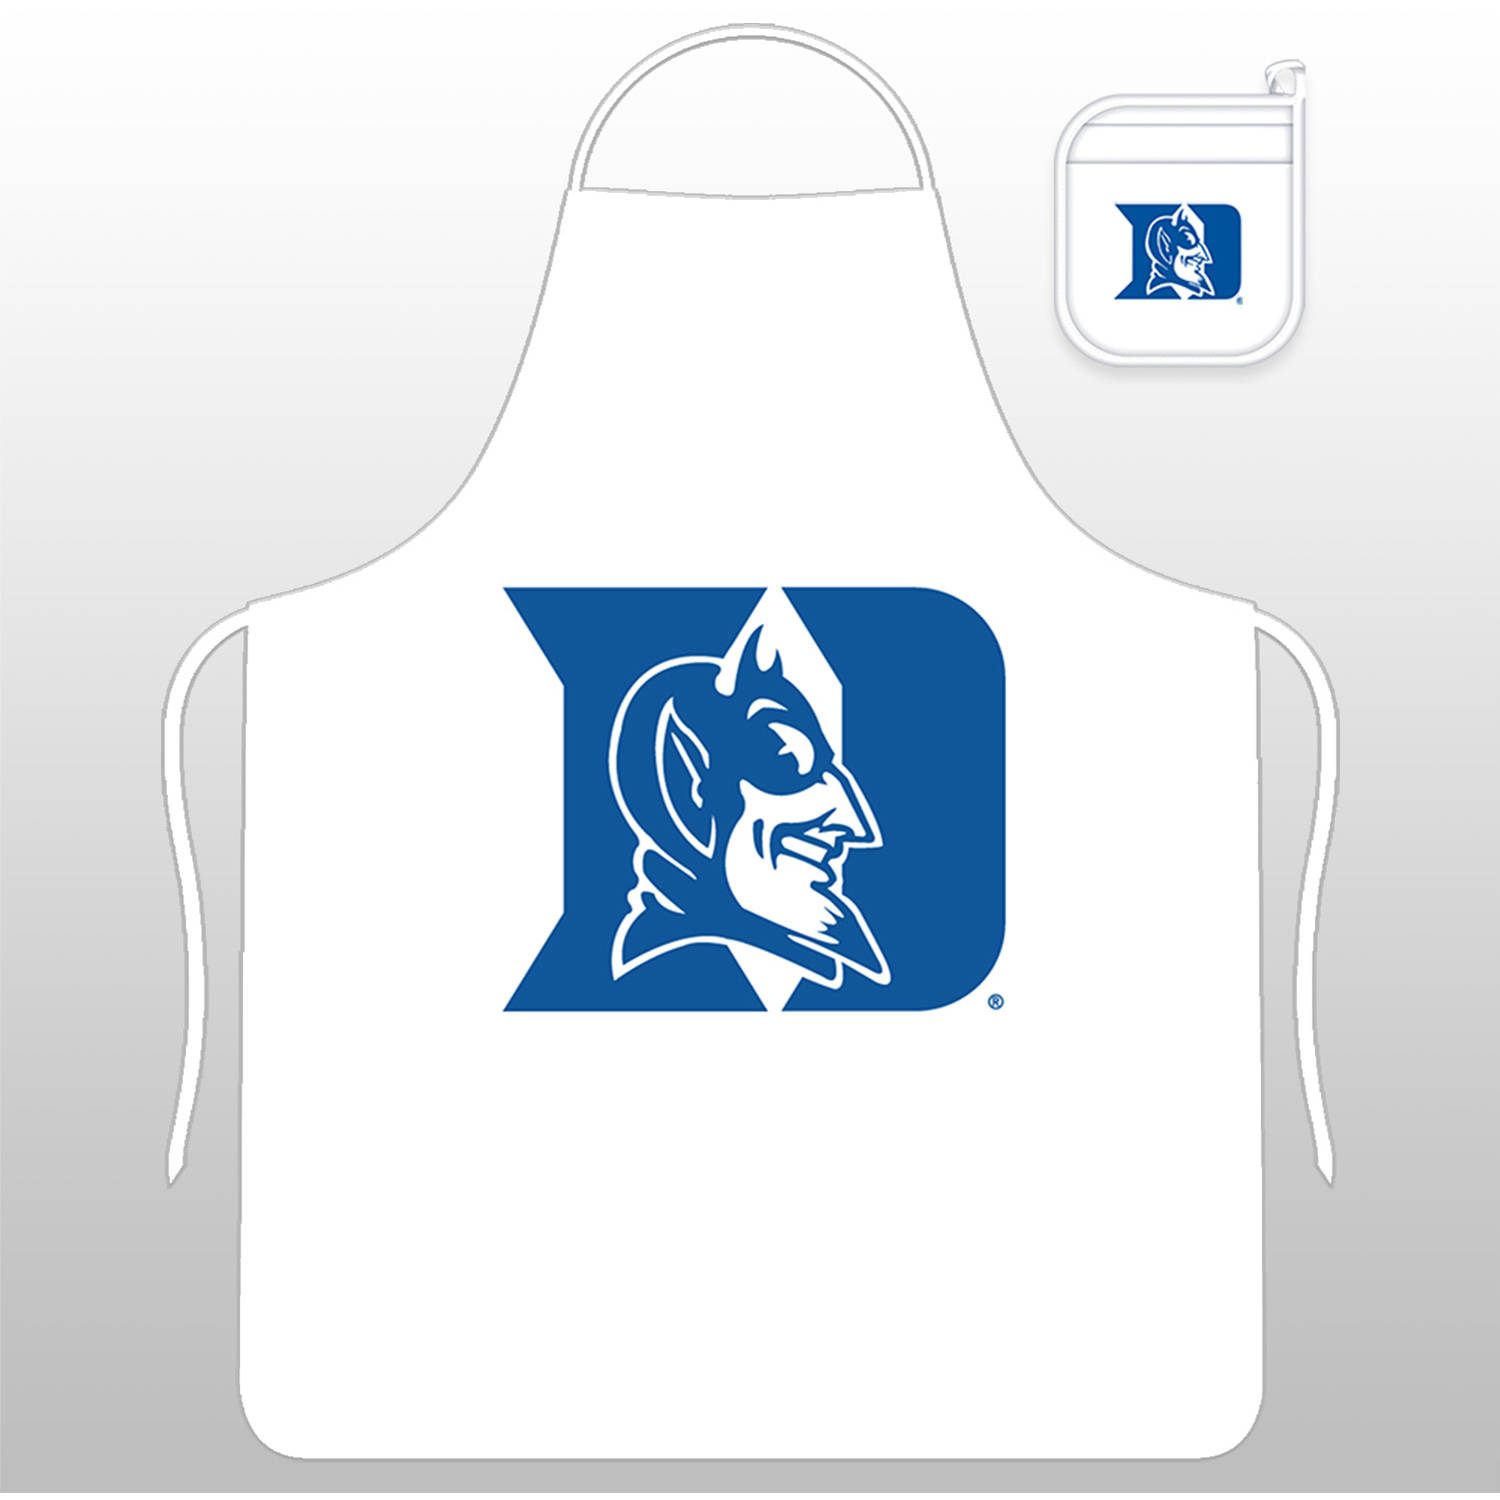 NCAA Duke University Tail Gate Kit with Apron and Mitt by Sports Coverage, Inc.